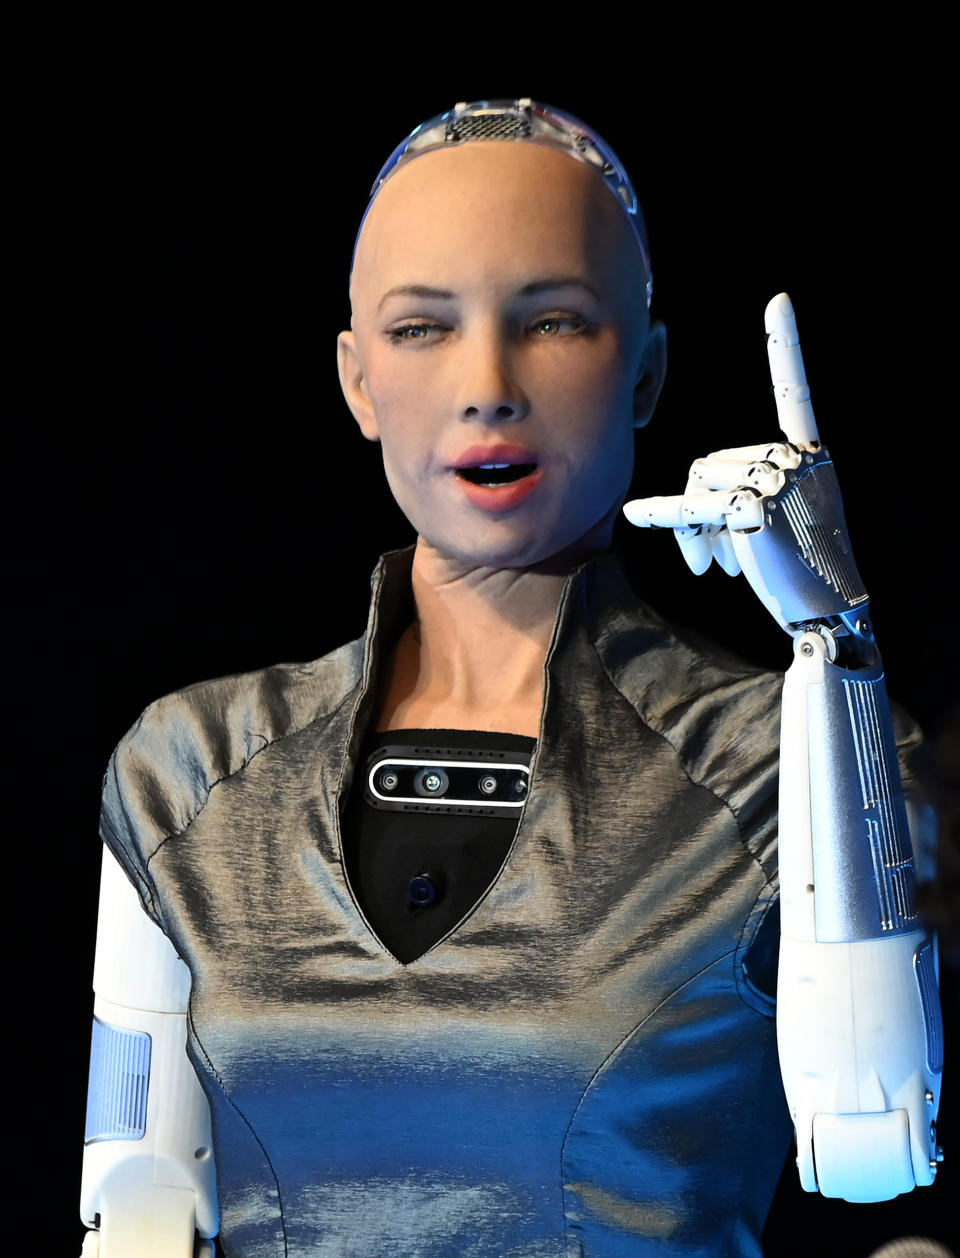 """Sophia the Robot delivers a speech at the National Auditorium in the framework of the """"Mexico siglo XXI"""" (Mexico XXI Century) forum organized by the Telmex foundation, owned by Mexican tycoon Carlos Slim, in Mexico City, on September 6, 2019. (Photo by ALFREDO ESTRELLA / AFP) (Photo by ALFREDO ESTRELLA/AFP via Getty Images)"""